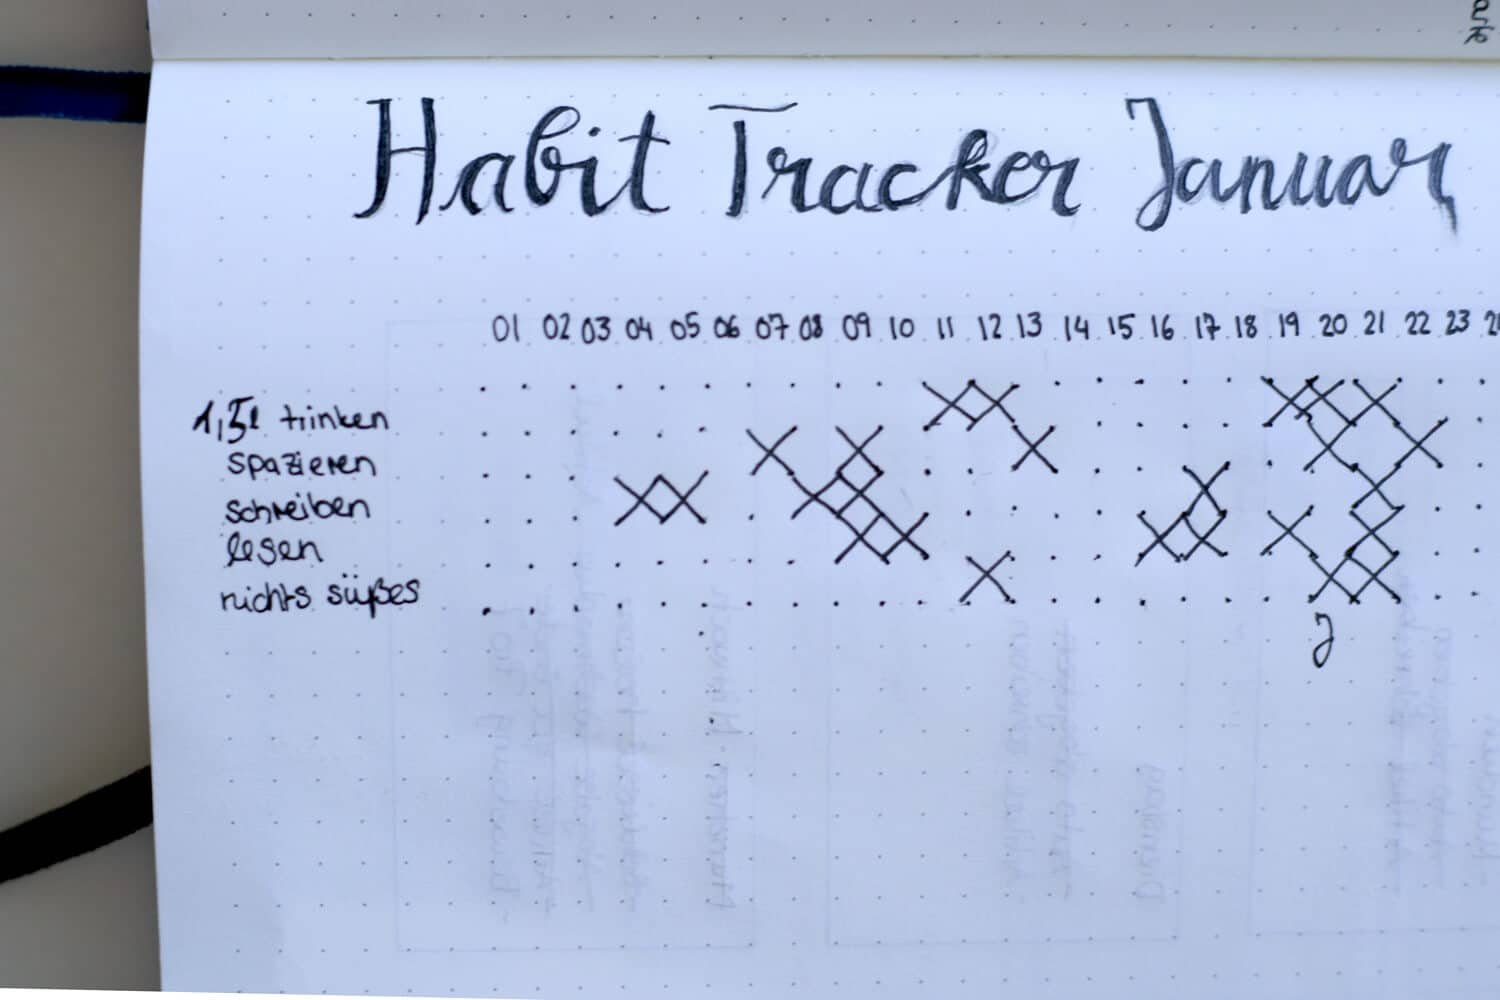 Der Habit Tracker im Bullet Journaling